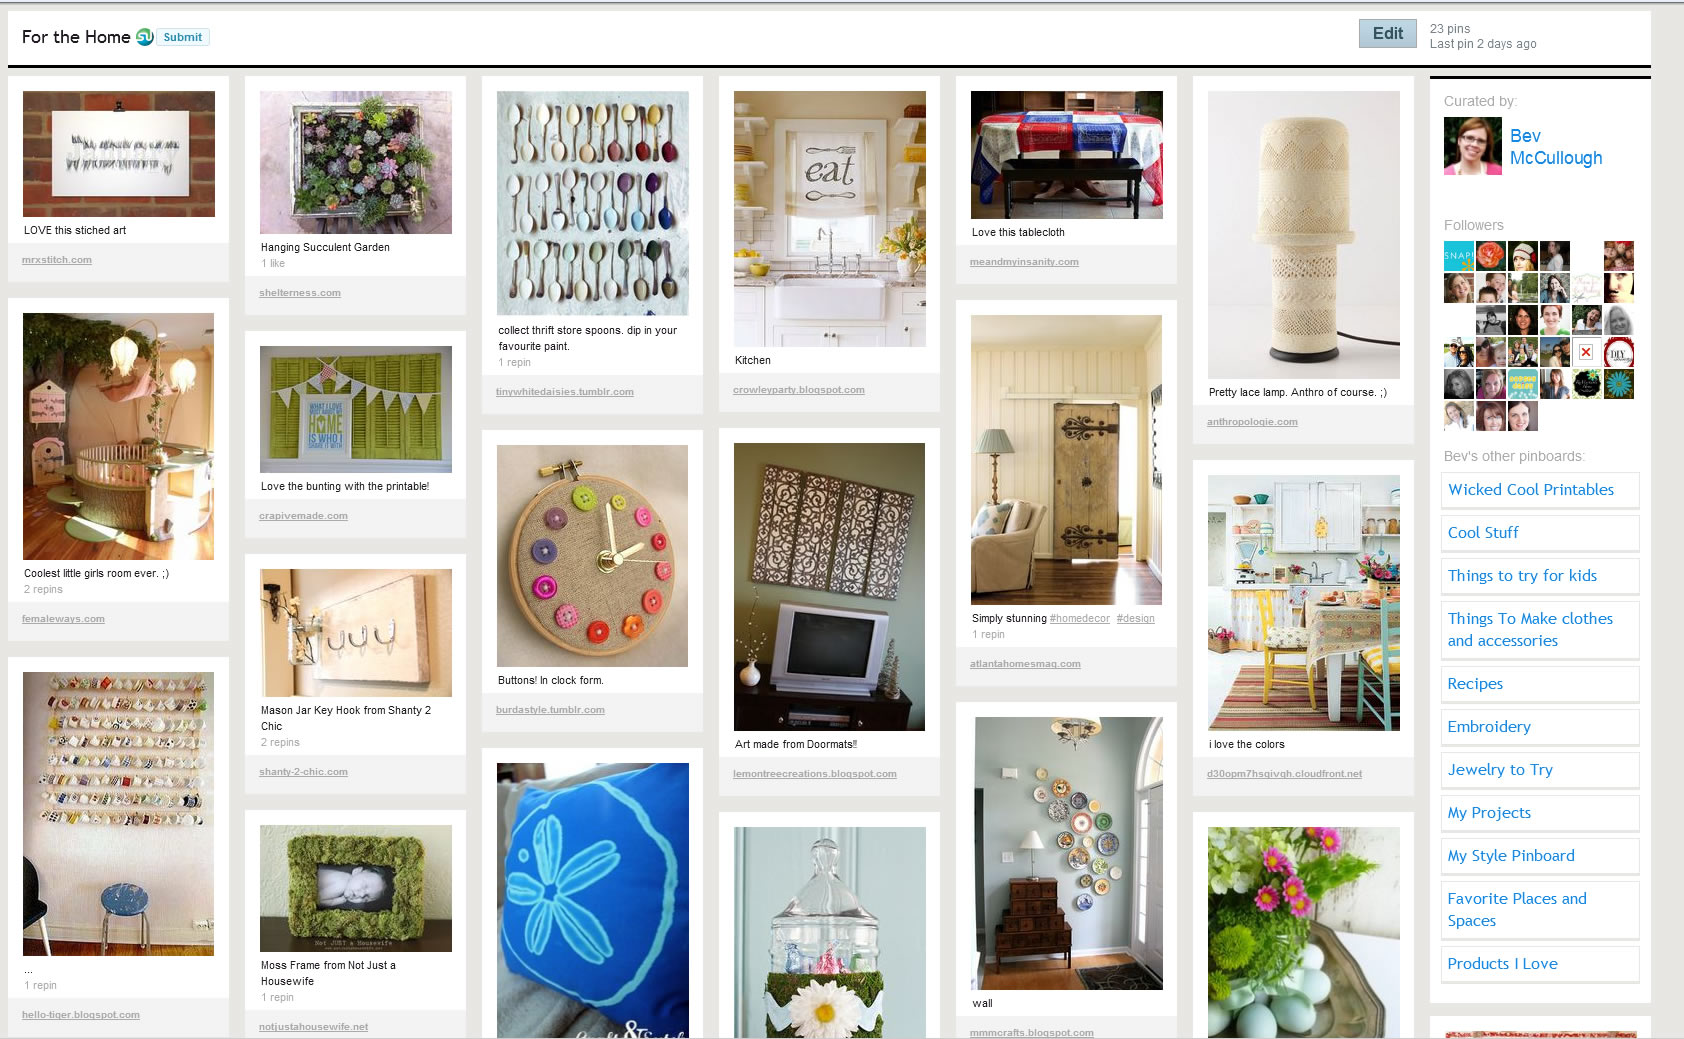 Some Pinterest Love!